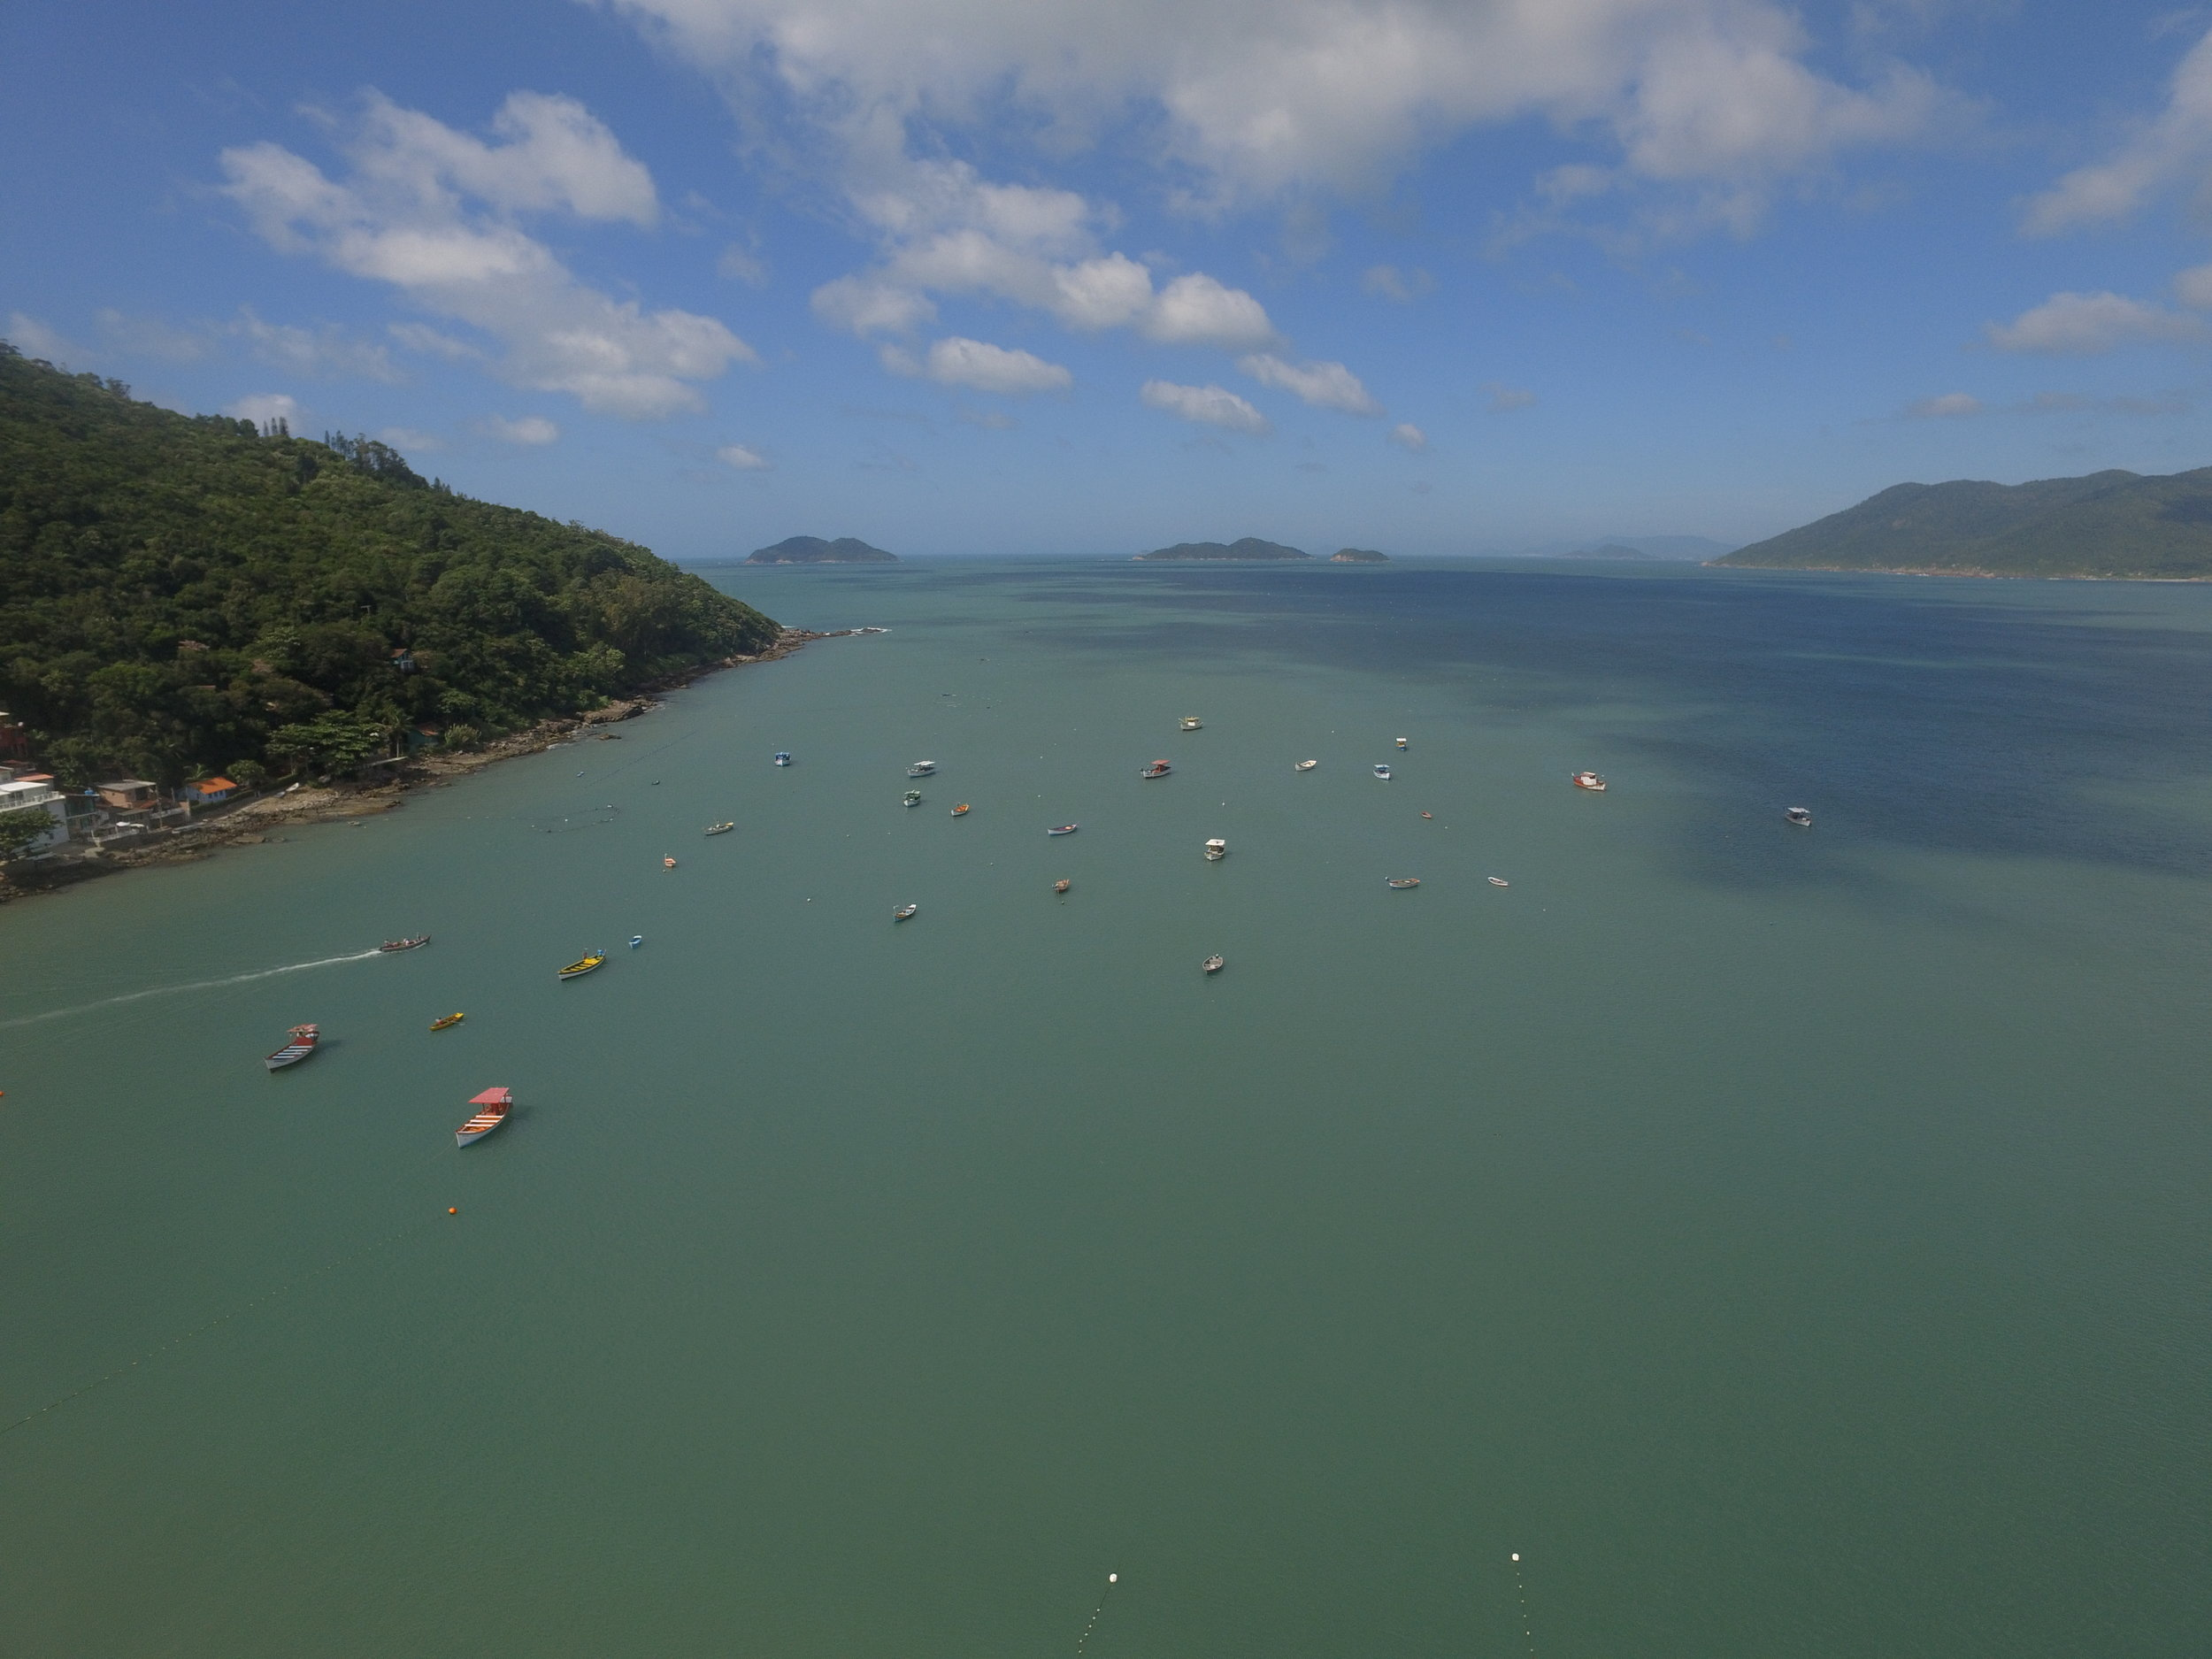 View of the south end of Florianopolis, Brazil.